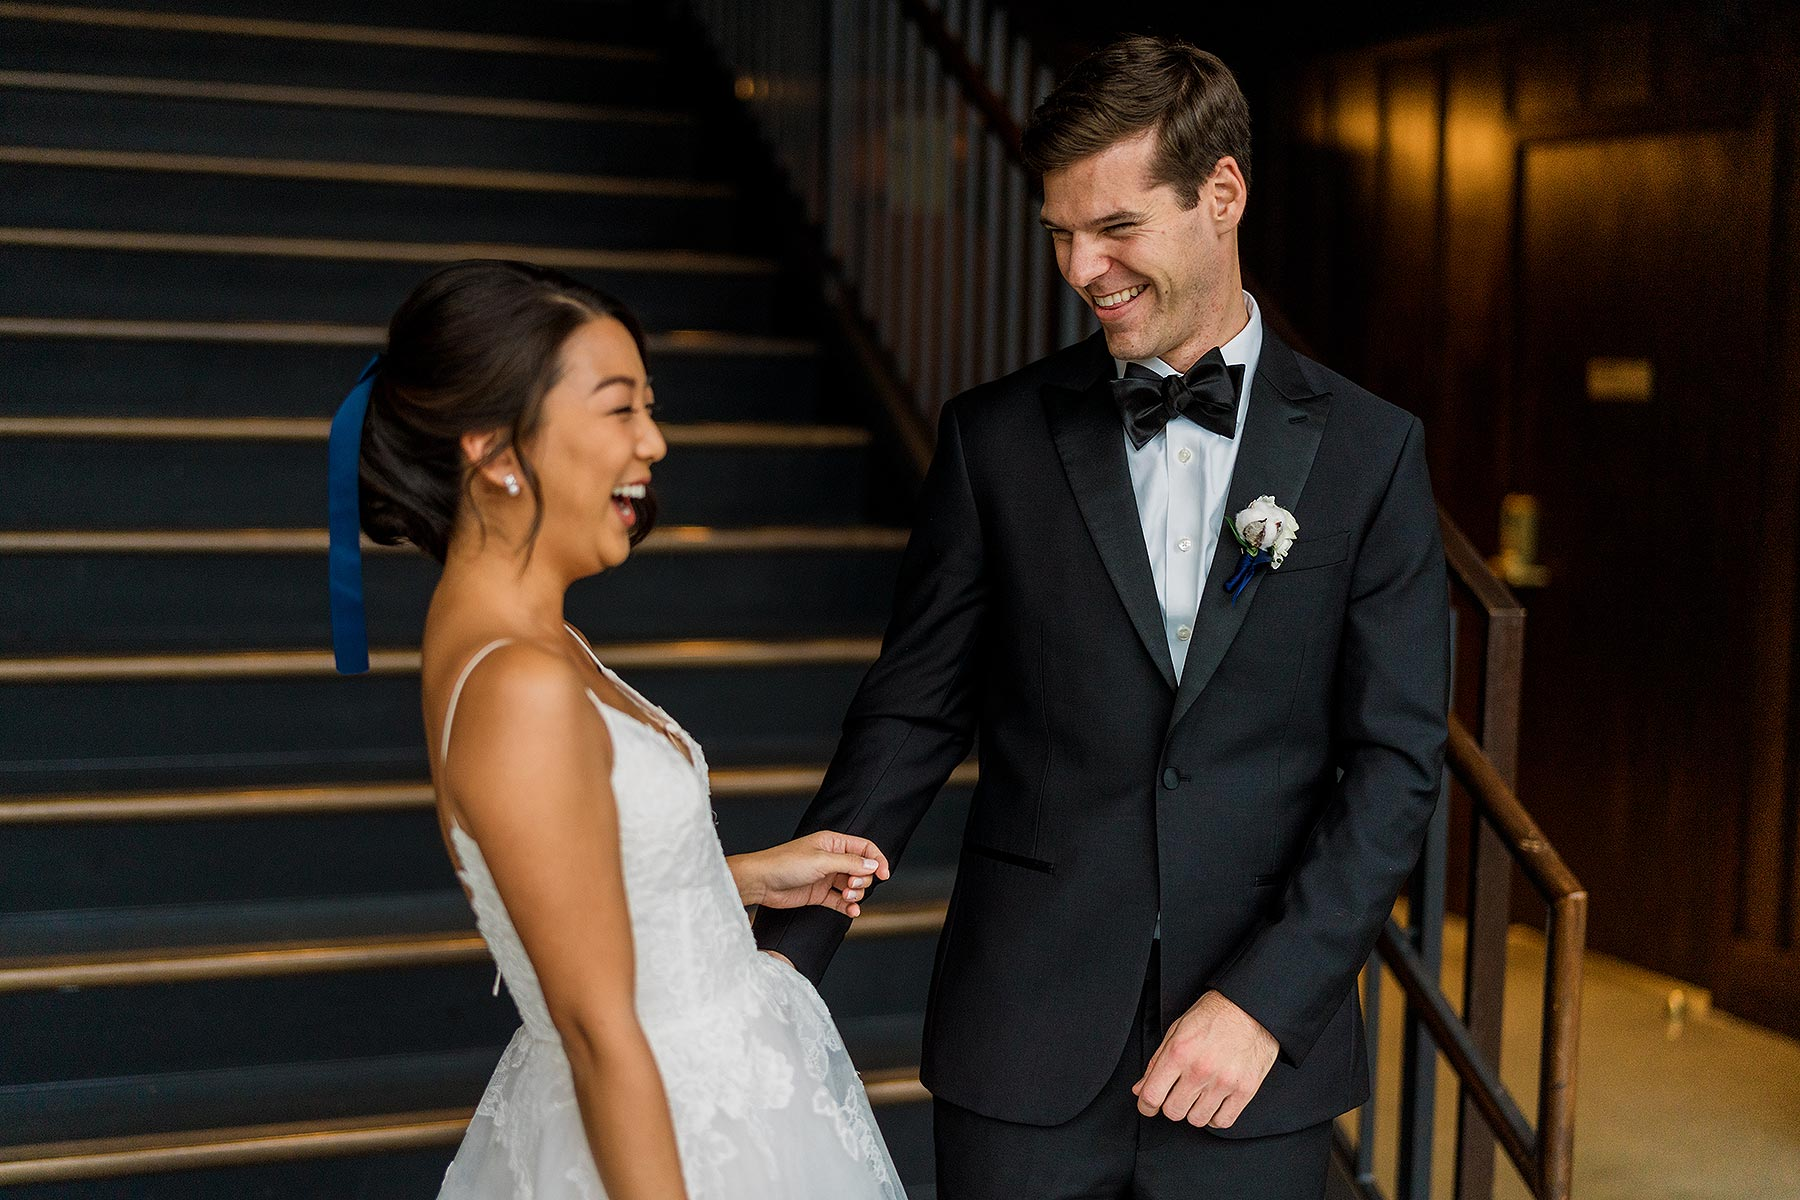 groom smiling at bride during first look on the stairs at district winery wedding by Washington DC Wedding Photographer Adam Mason